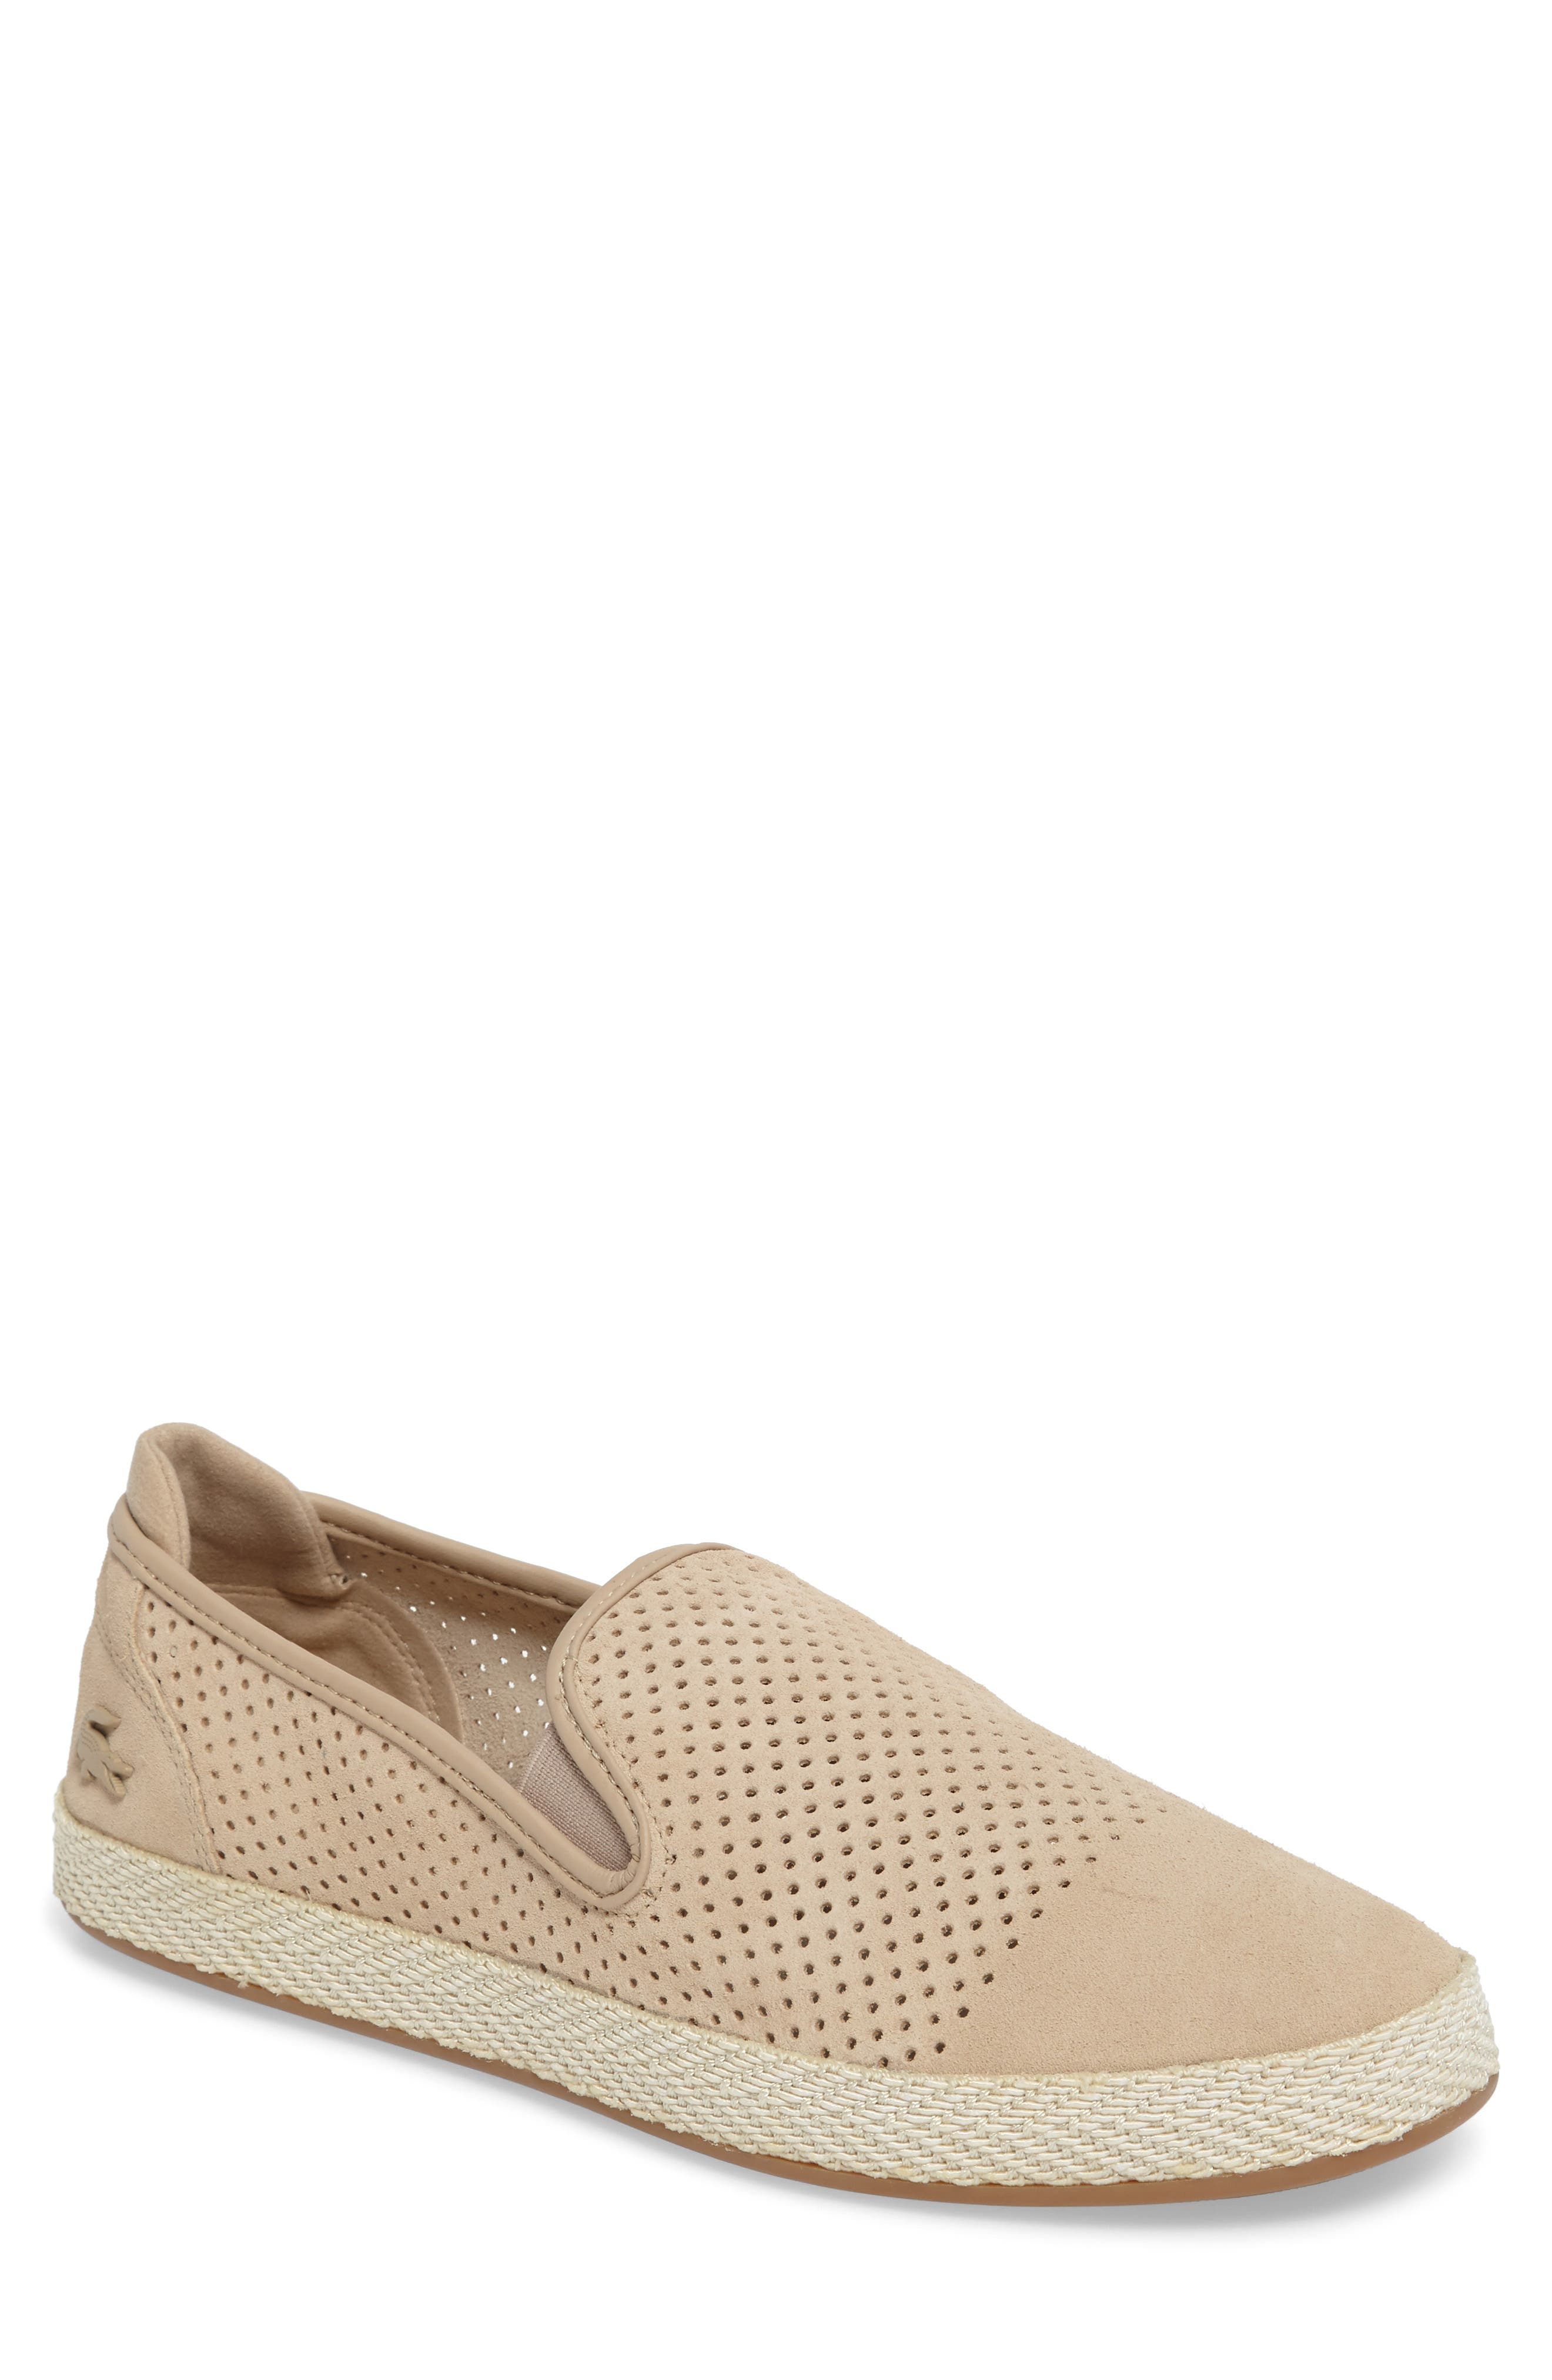 Tombre Slip-On,                             Main thumbnail 1, color,                             Natural Suede